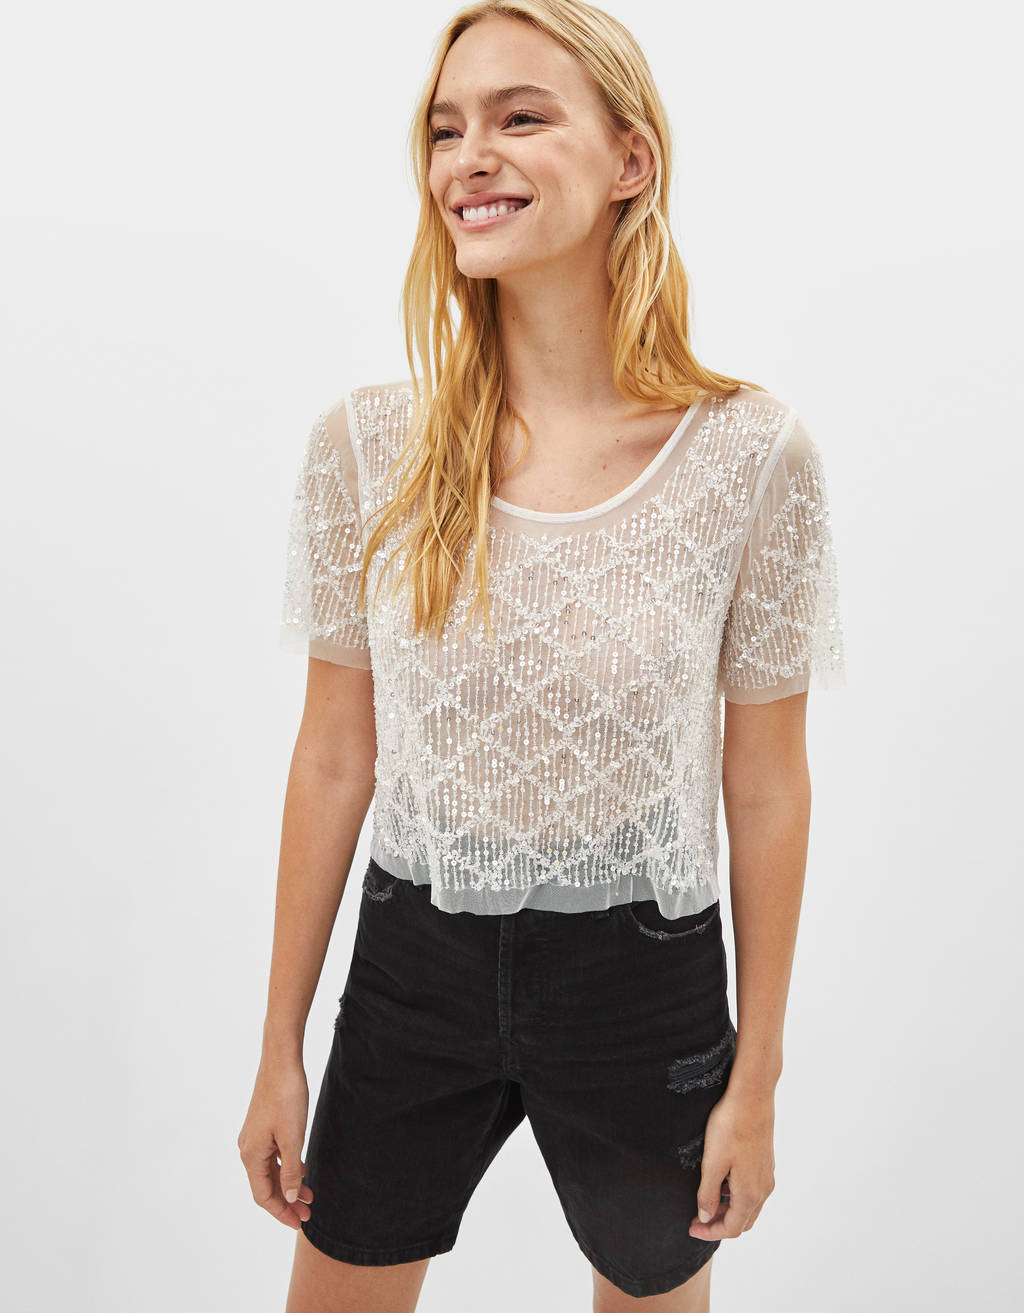 Cropped T-shirt with diamanté detailing